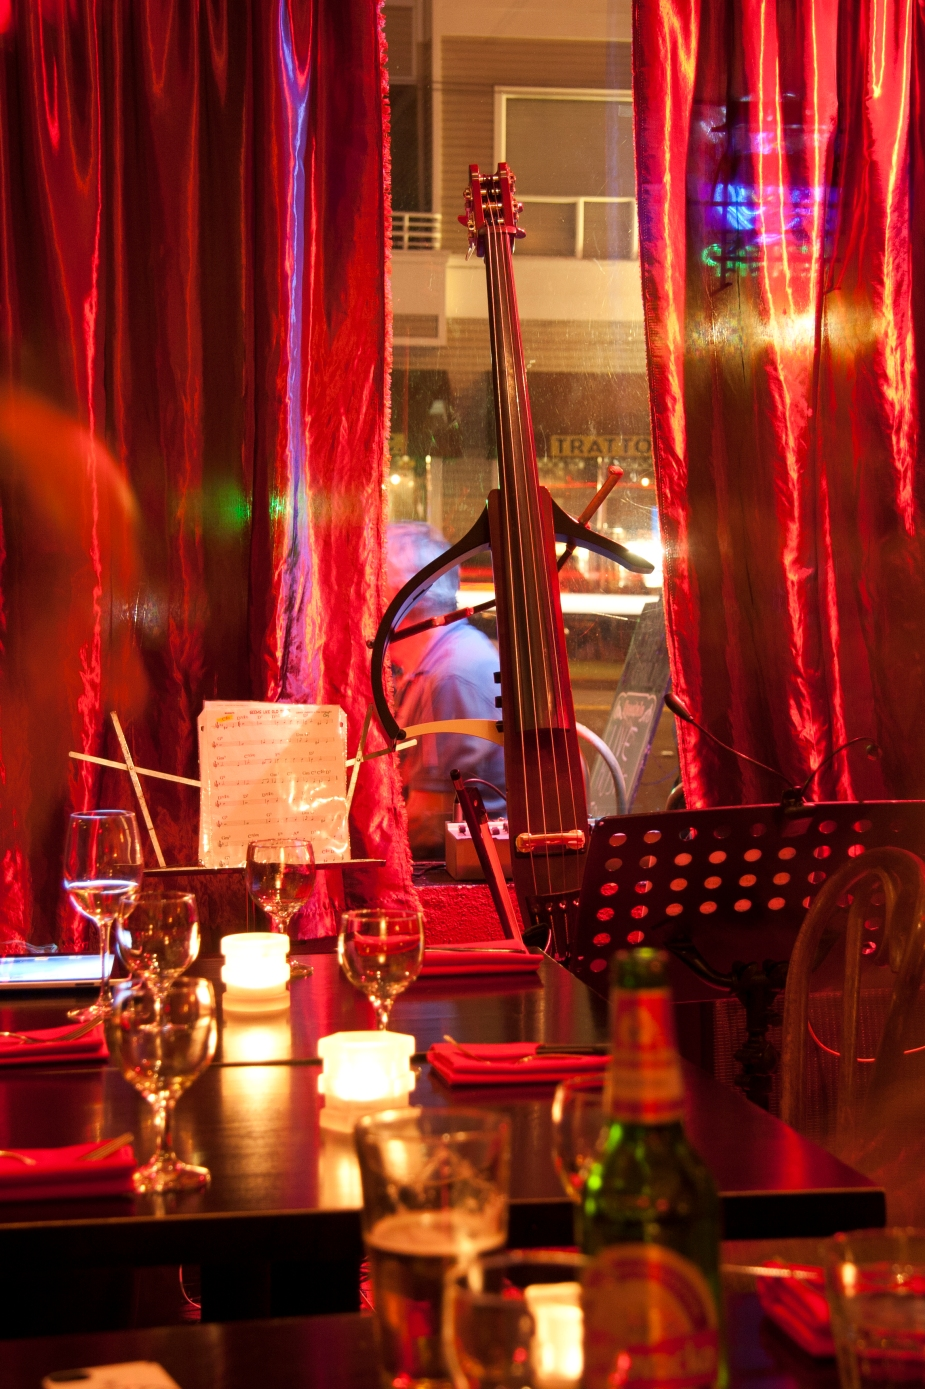 bistro-sf-grill-live-jazz-music